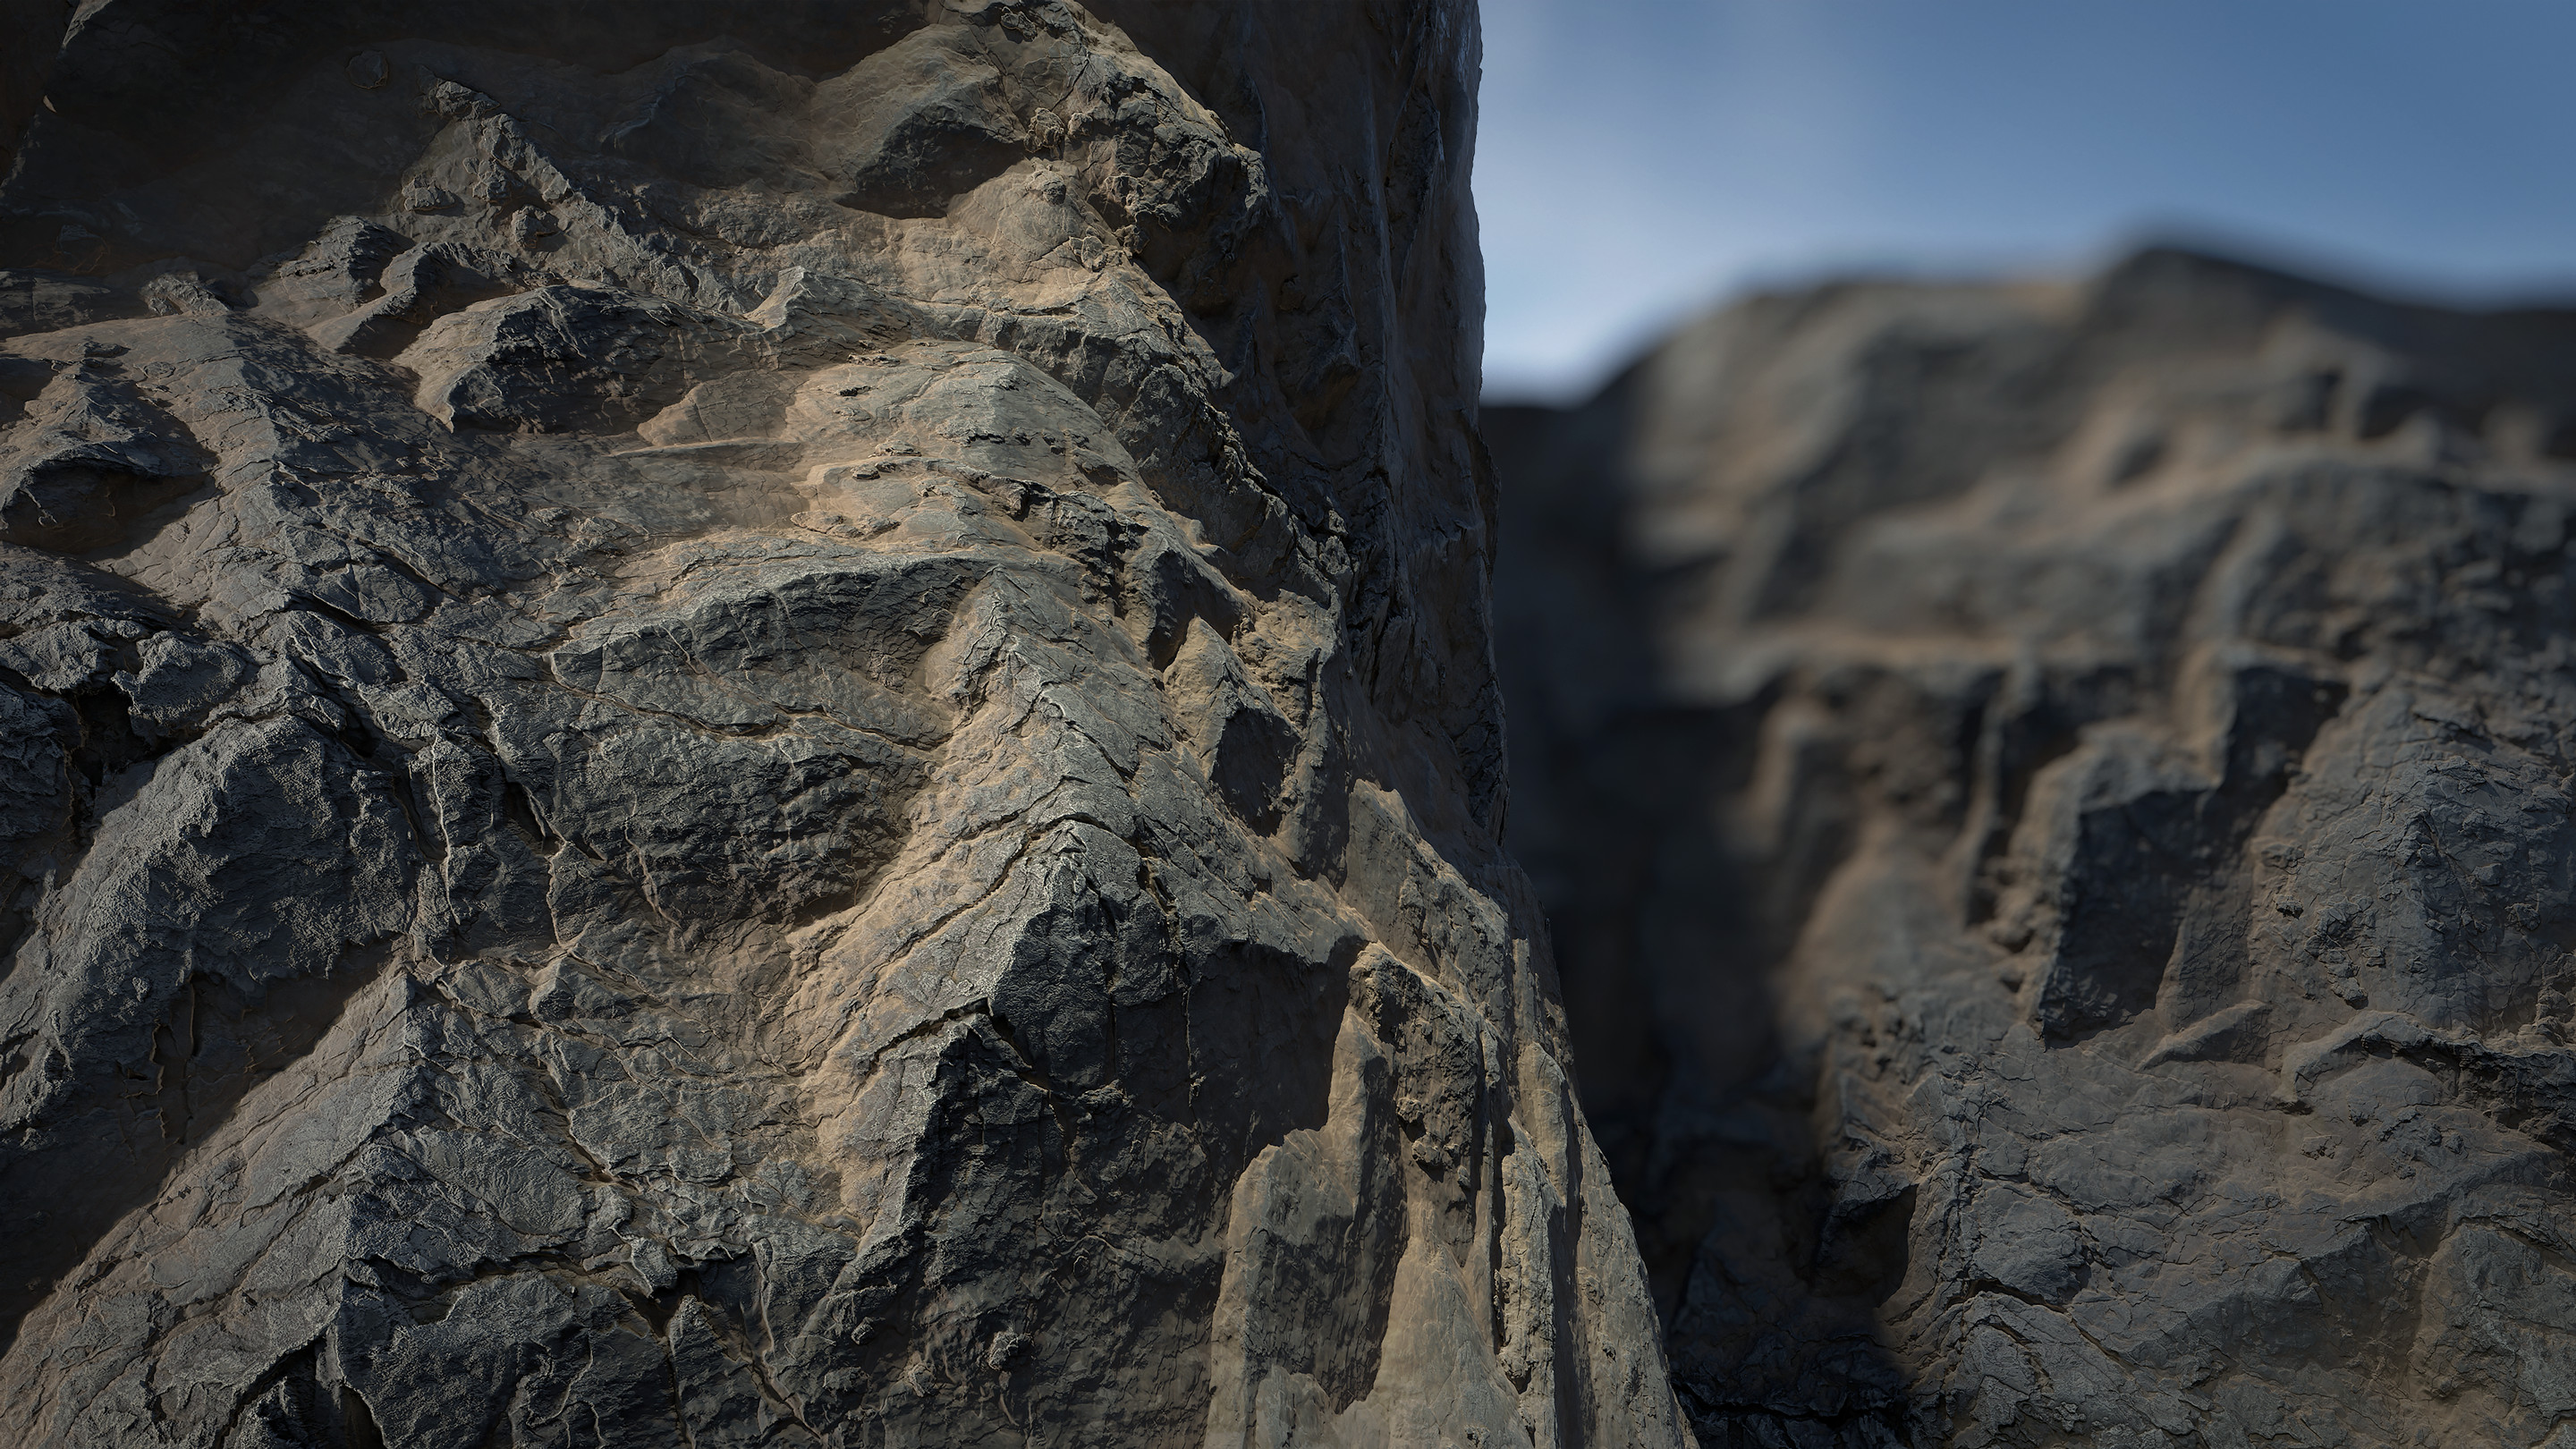 Mountain Cliff Study made 100% in Substance Designer and rendered in Marmoset Toolbag 4.